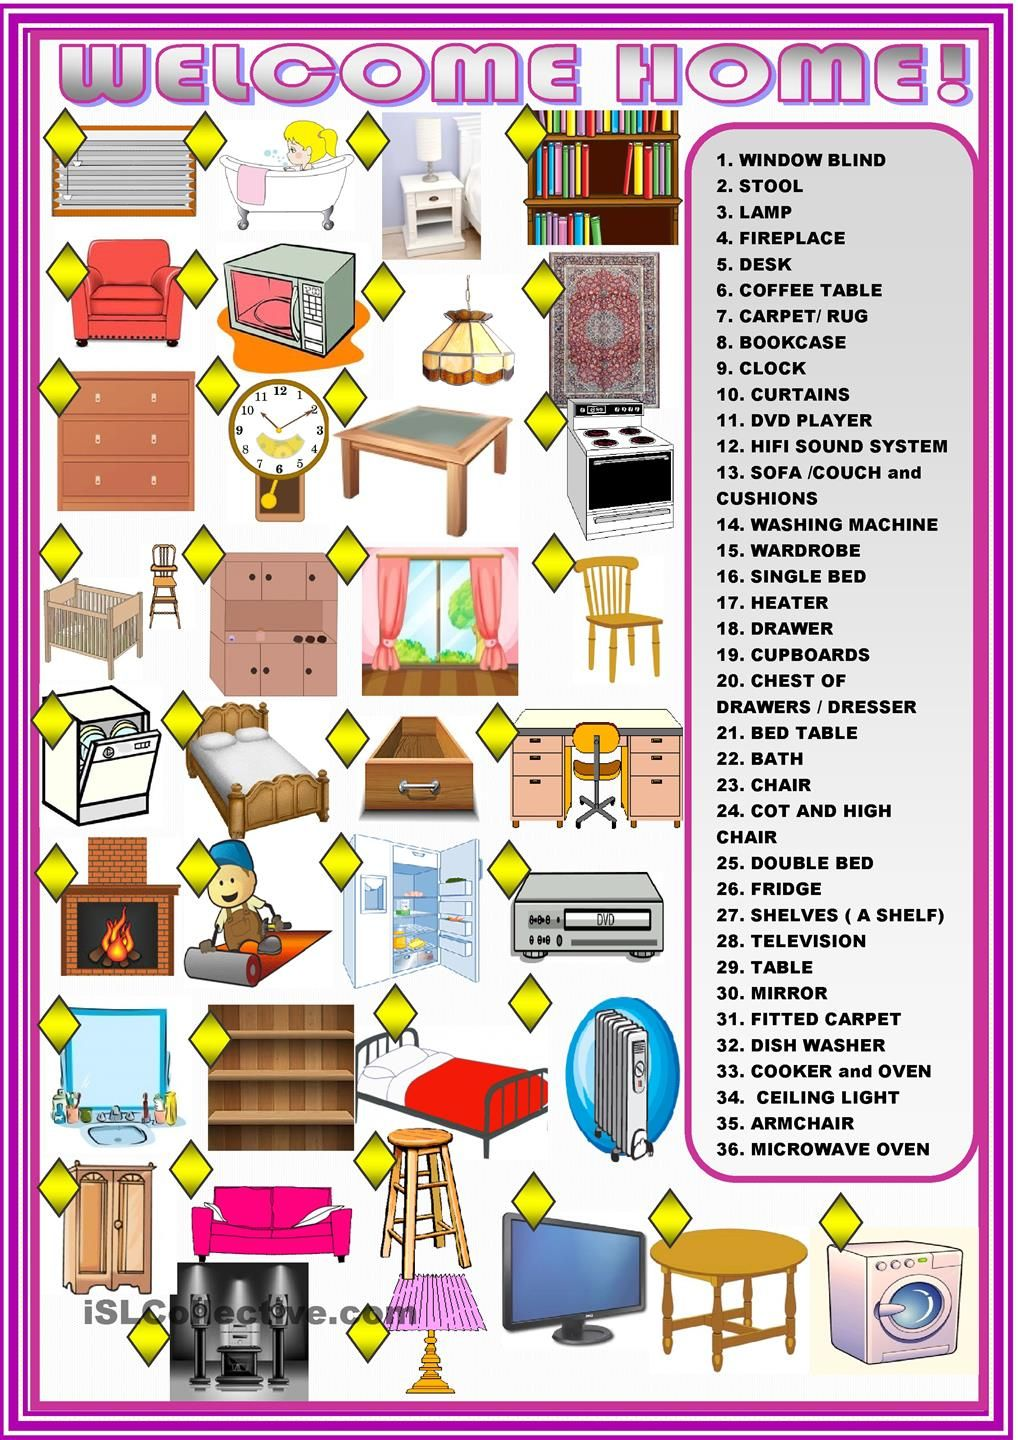 Welcome home furniture matching activity ingles - Muebles en ingles ...